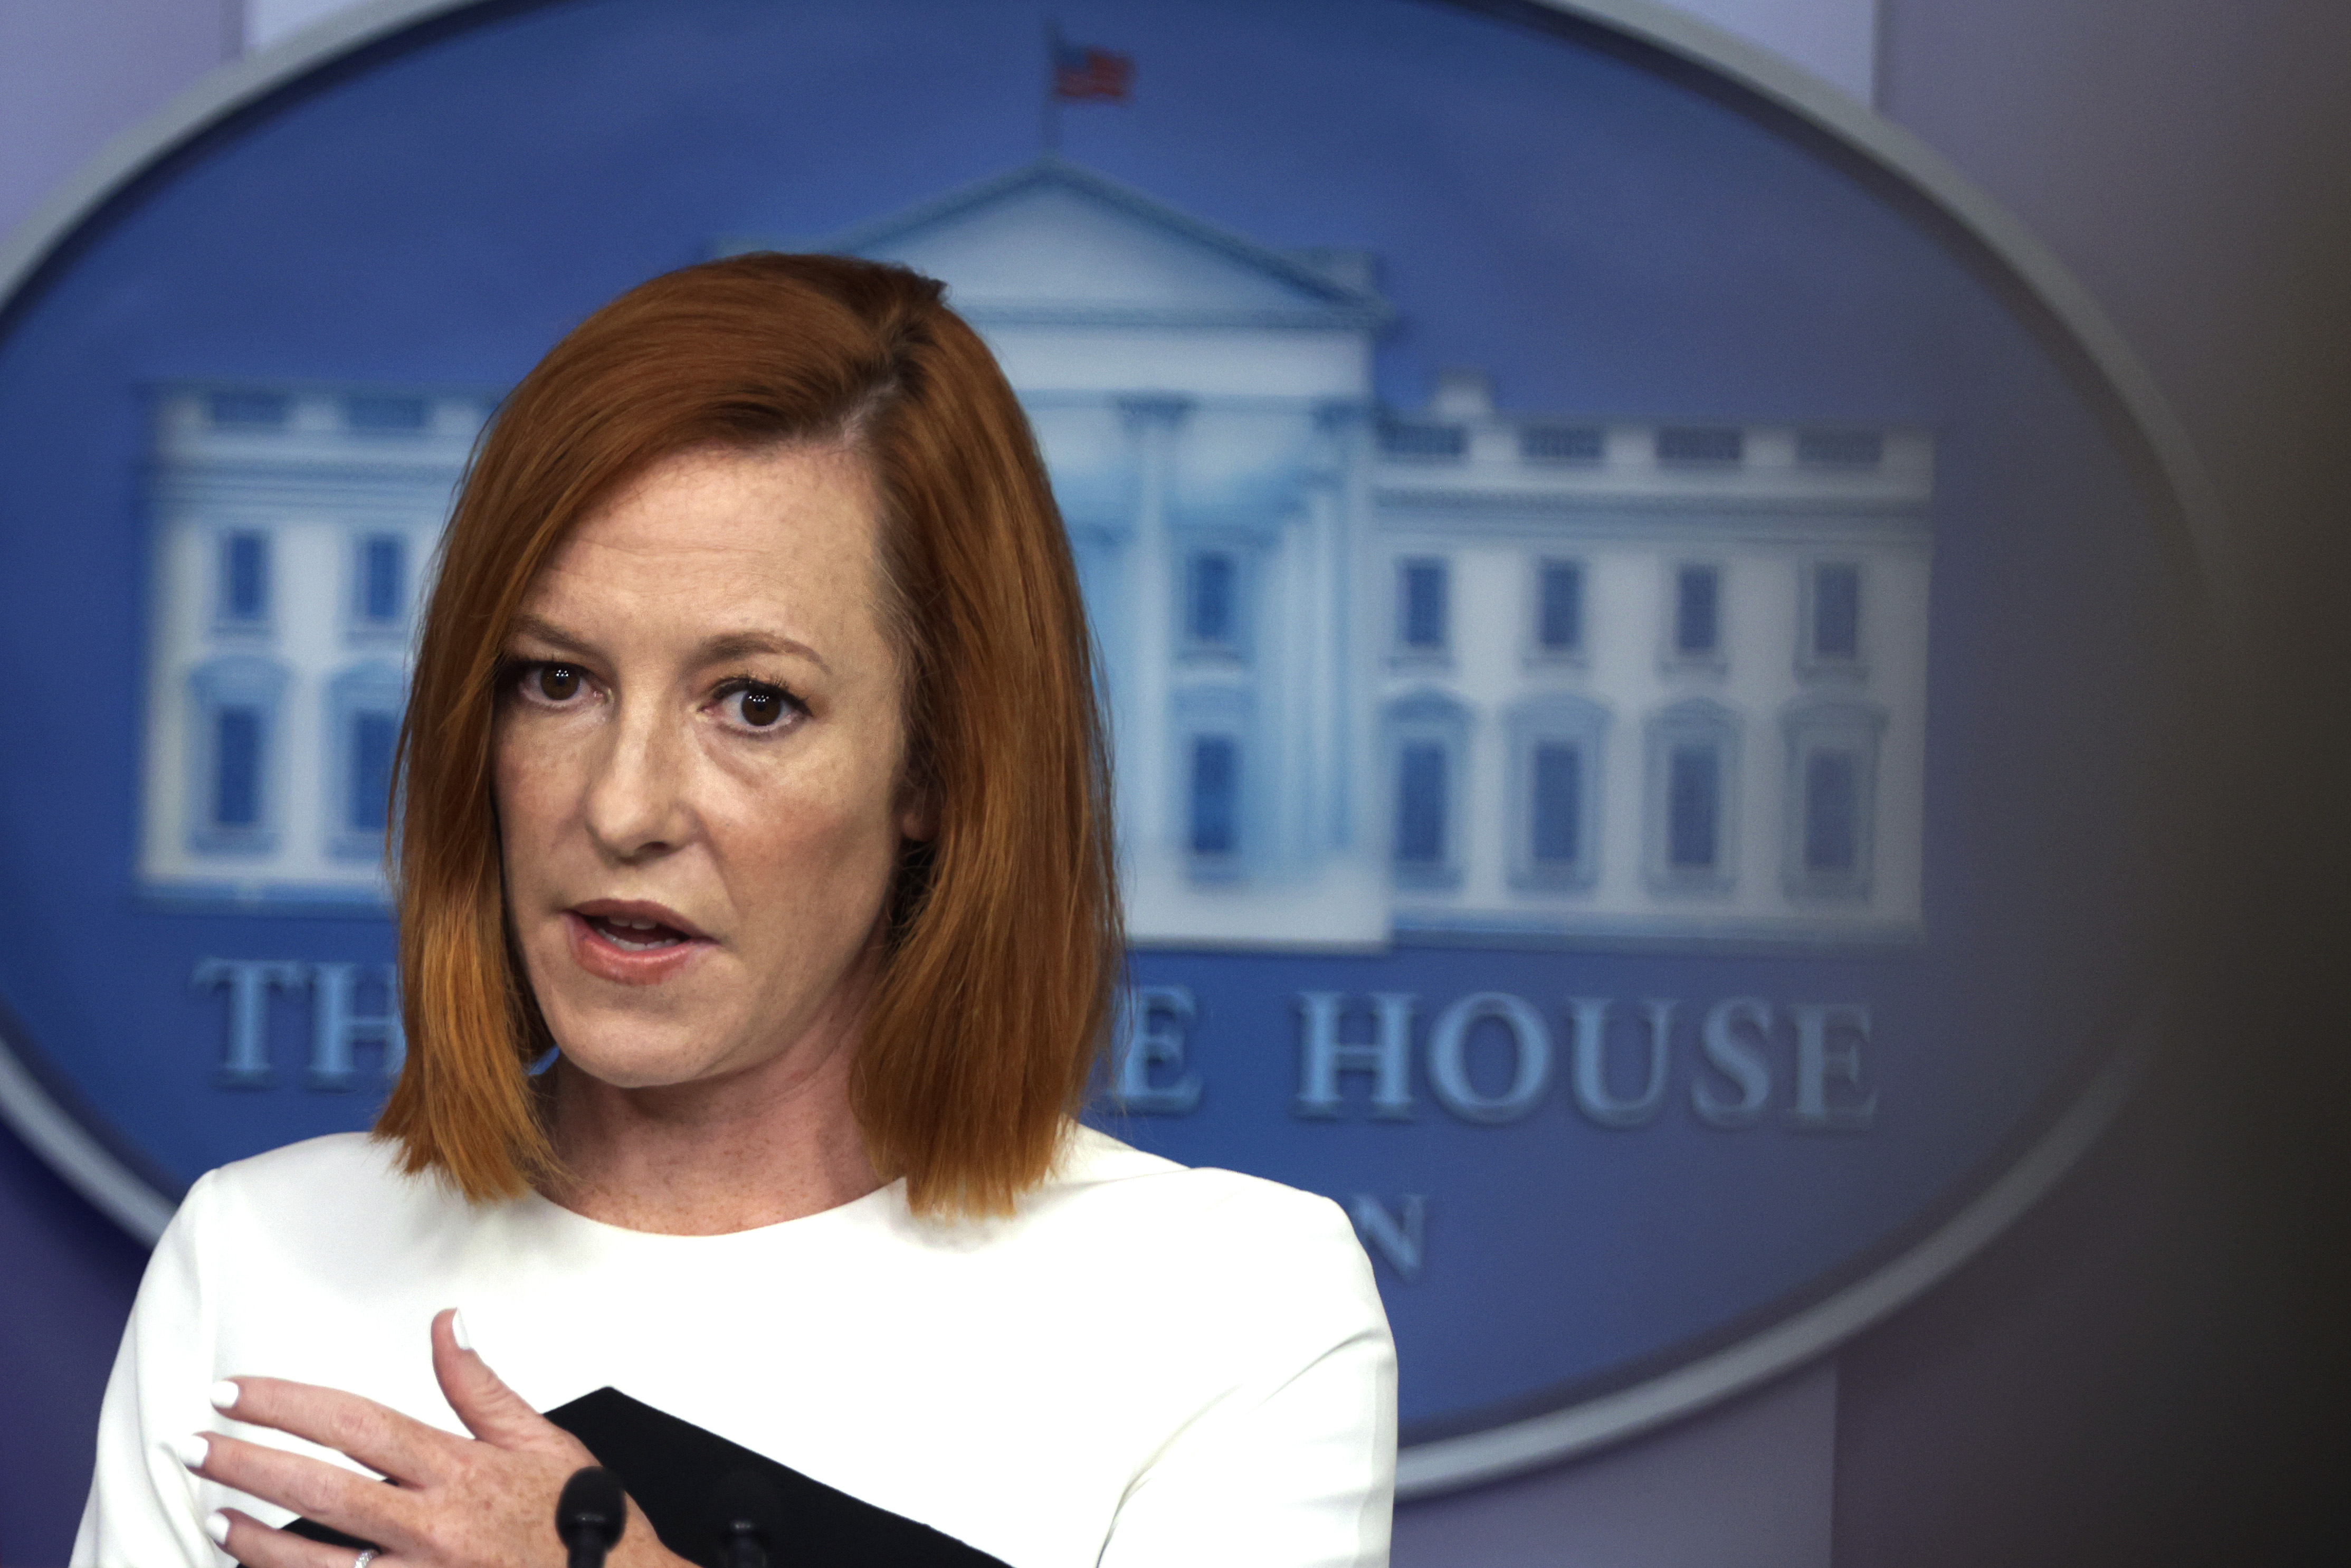 White House Press Secretary Jen Psaki speaks during a daily press briefing at the James S. Brady Press Briefing Room of the White House in Washington, DC. (Photo by Alex Wong/Getty Images)